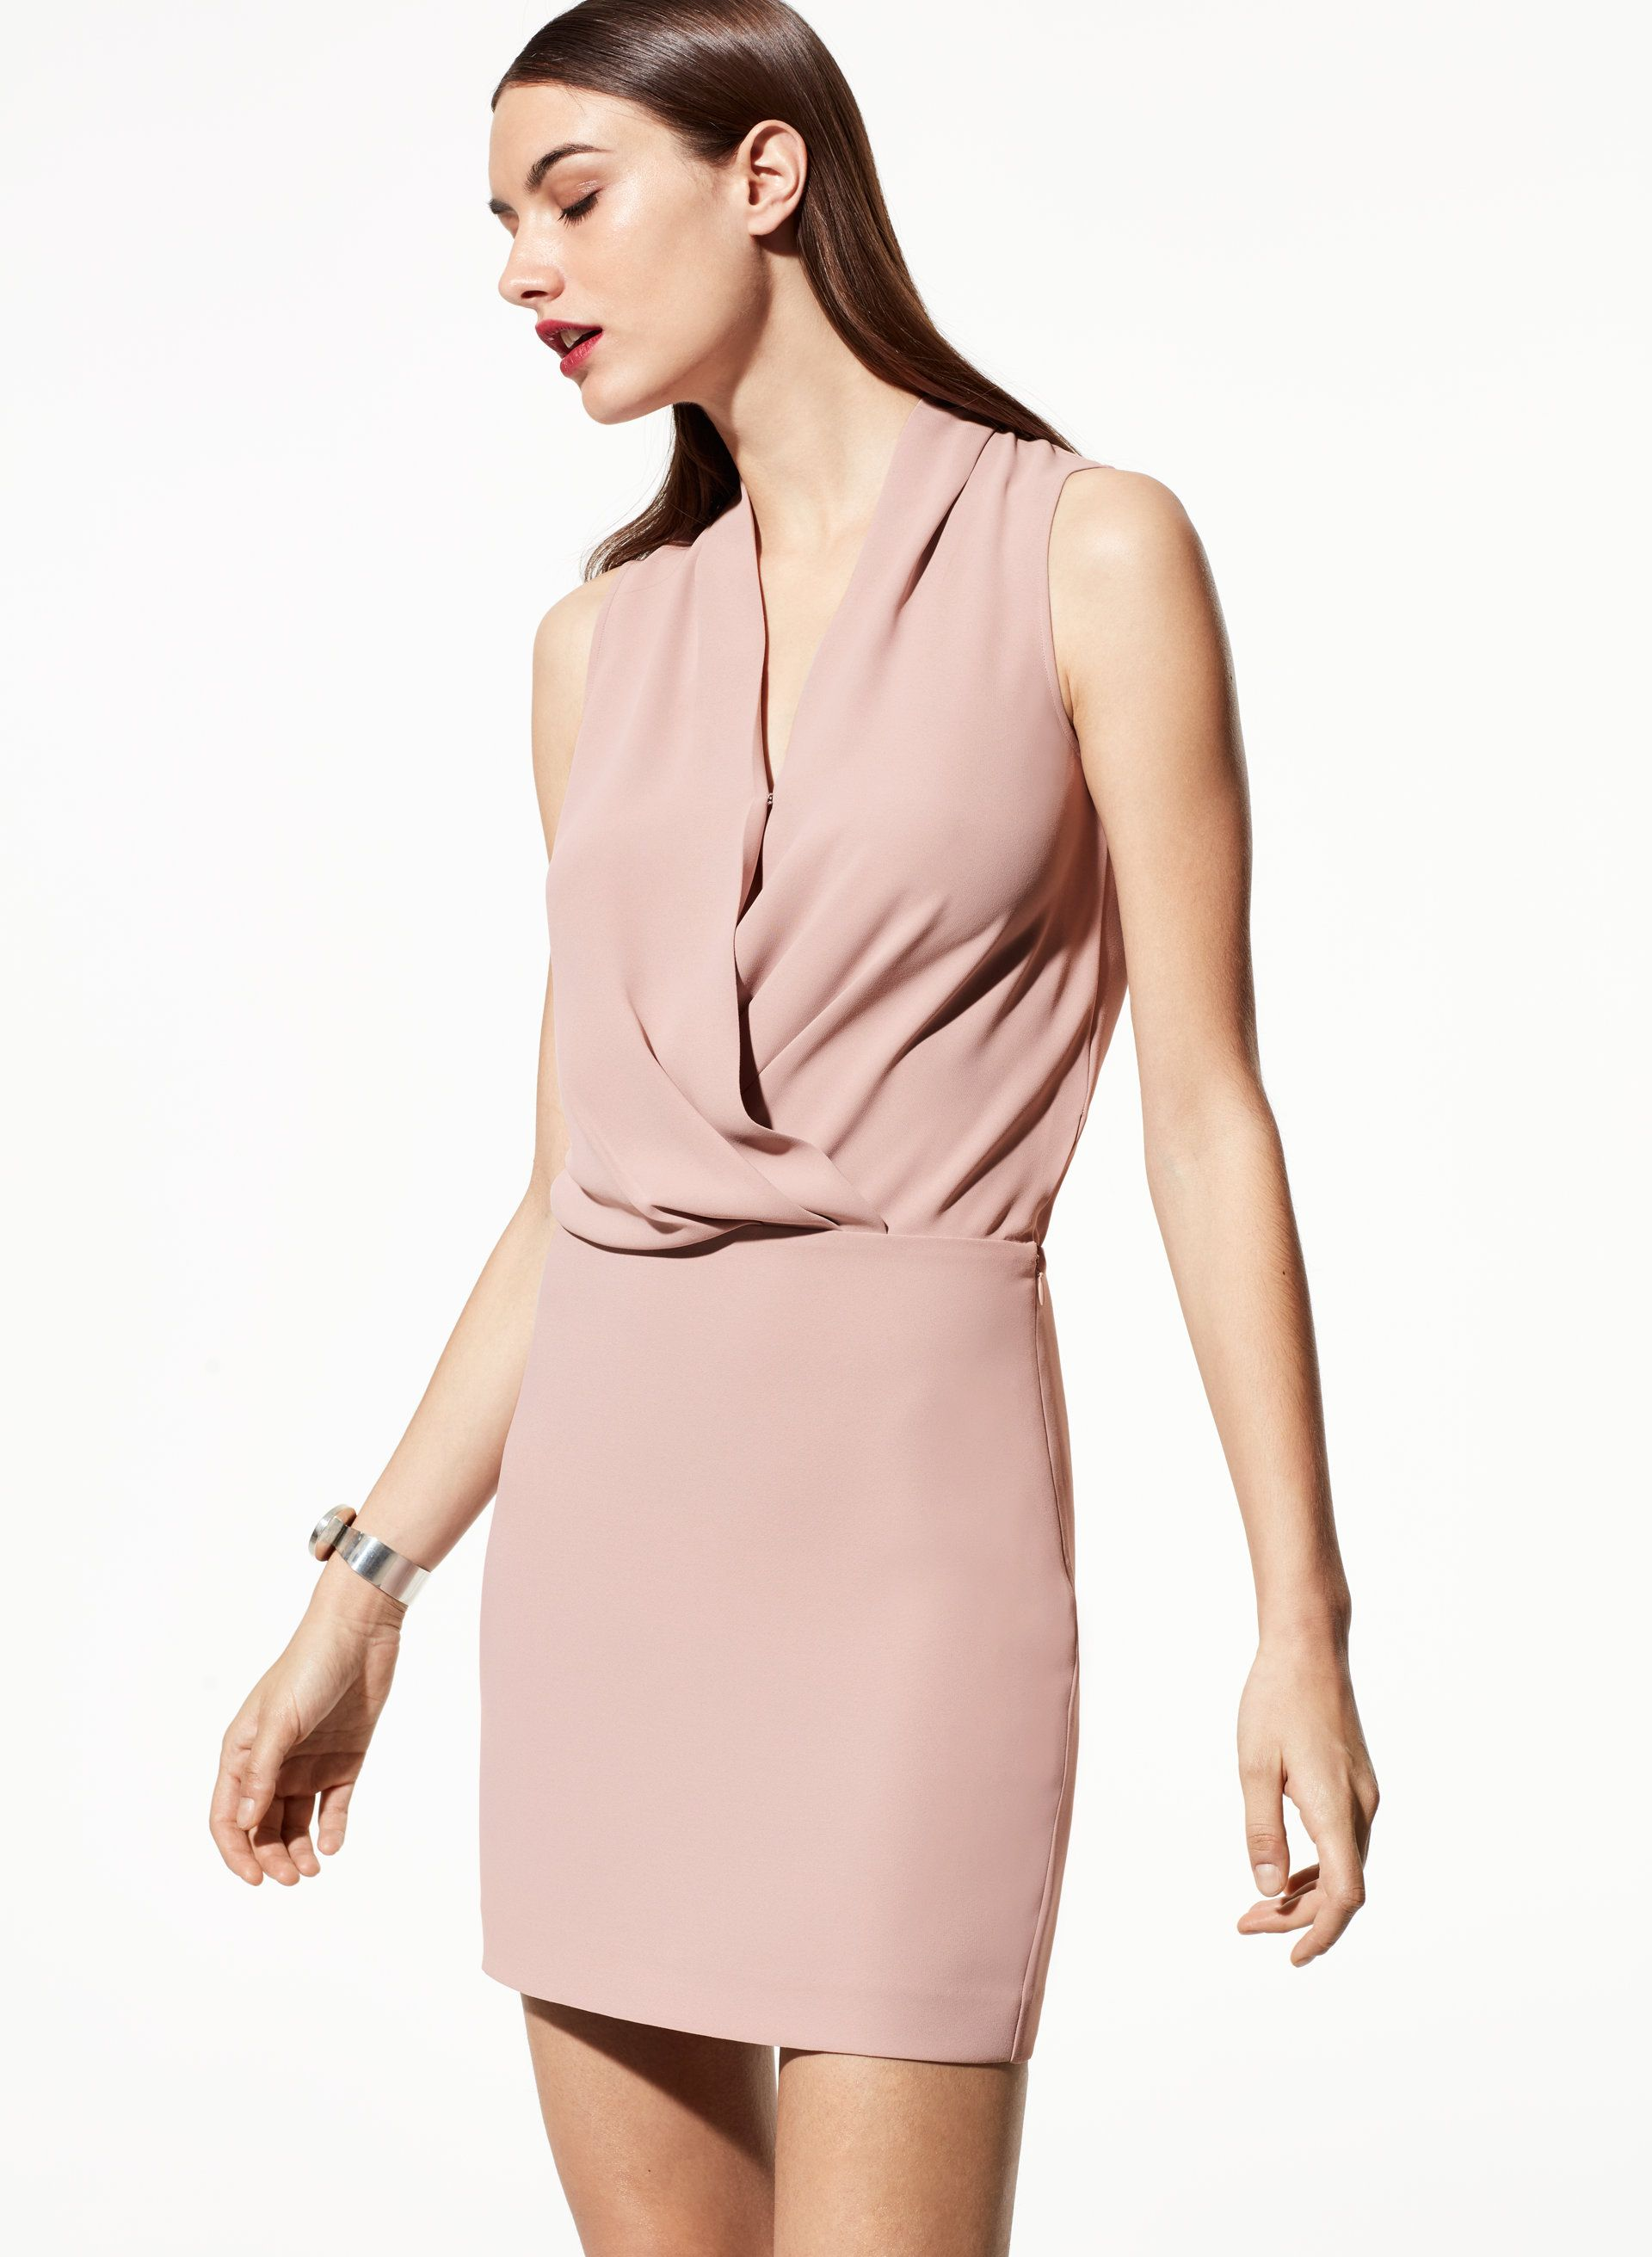 eb7af53301896 Phoenix dress | Gettin stylish | Dresses, Aritzia dress, Fashion